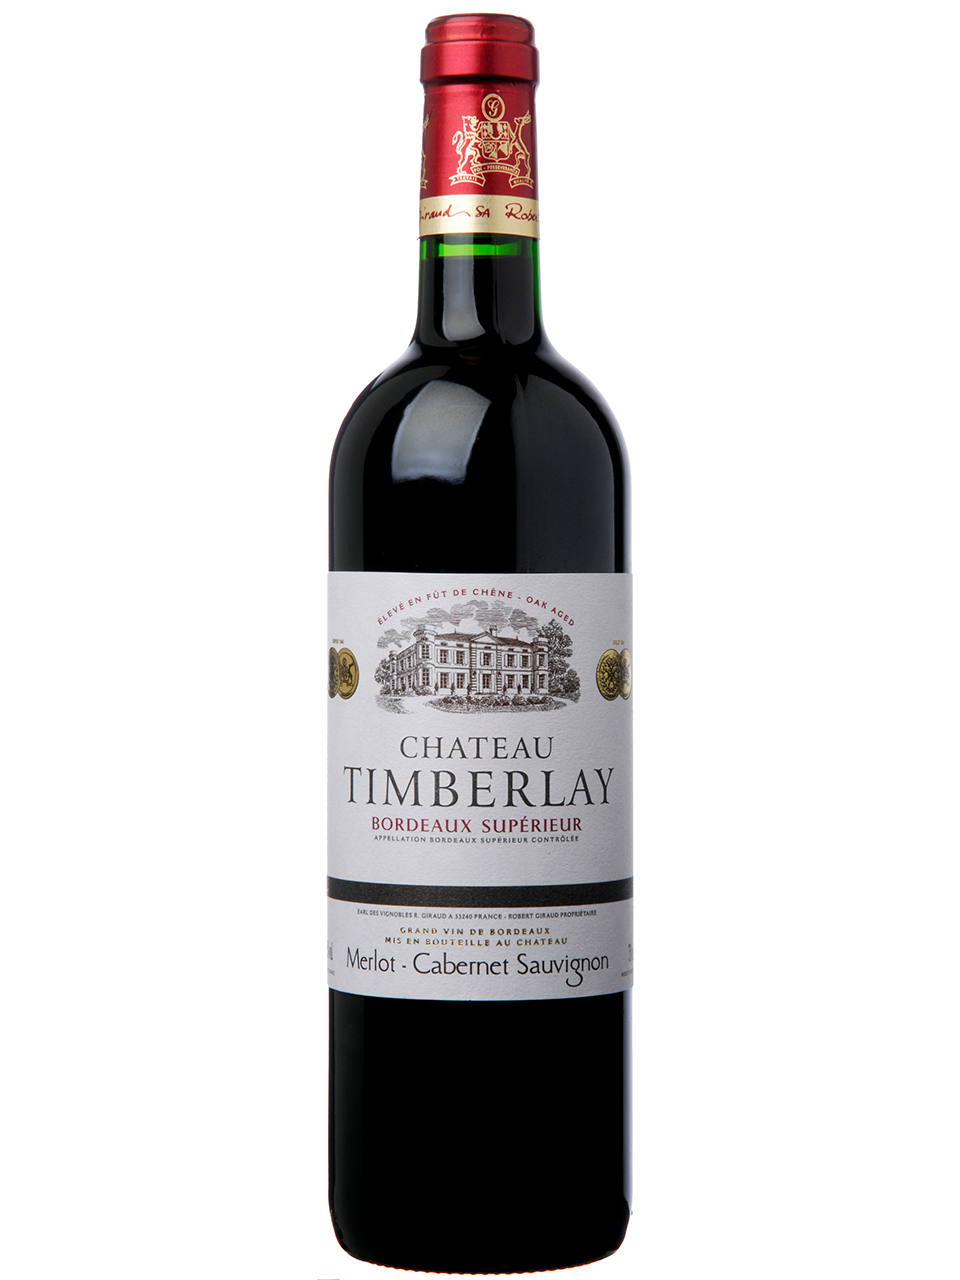 Giraud Chateau Timberlay Bordeaux Superieur Red